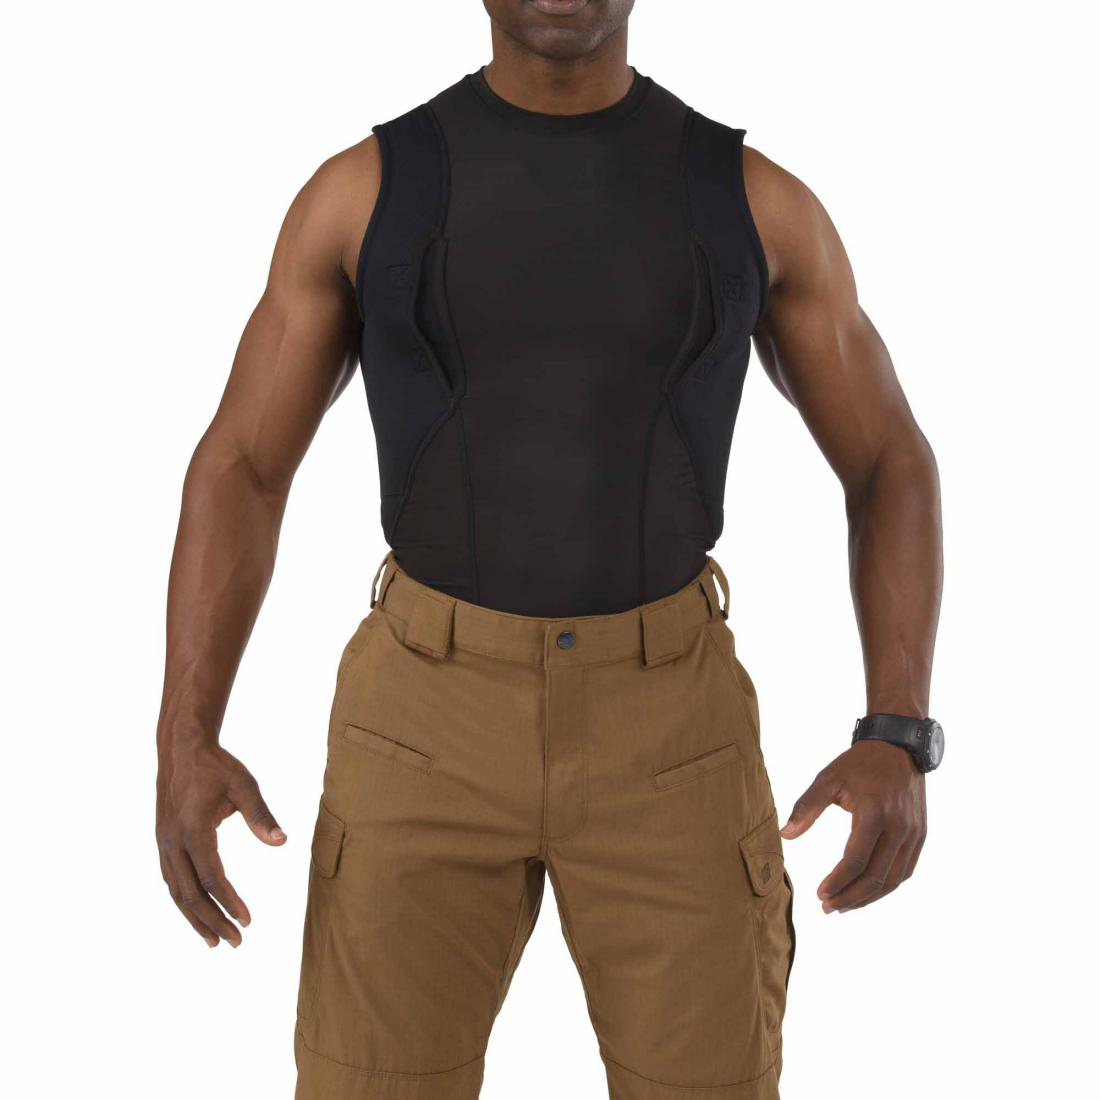 5.11 Tactical 40107 Men Sleeveless Holster Shirt Black